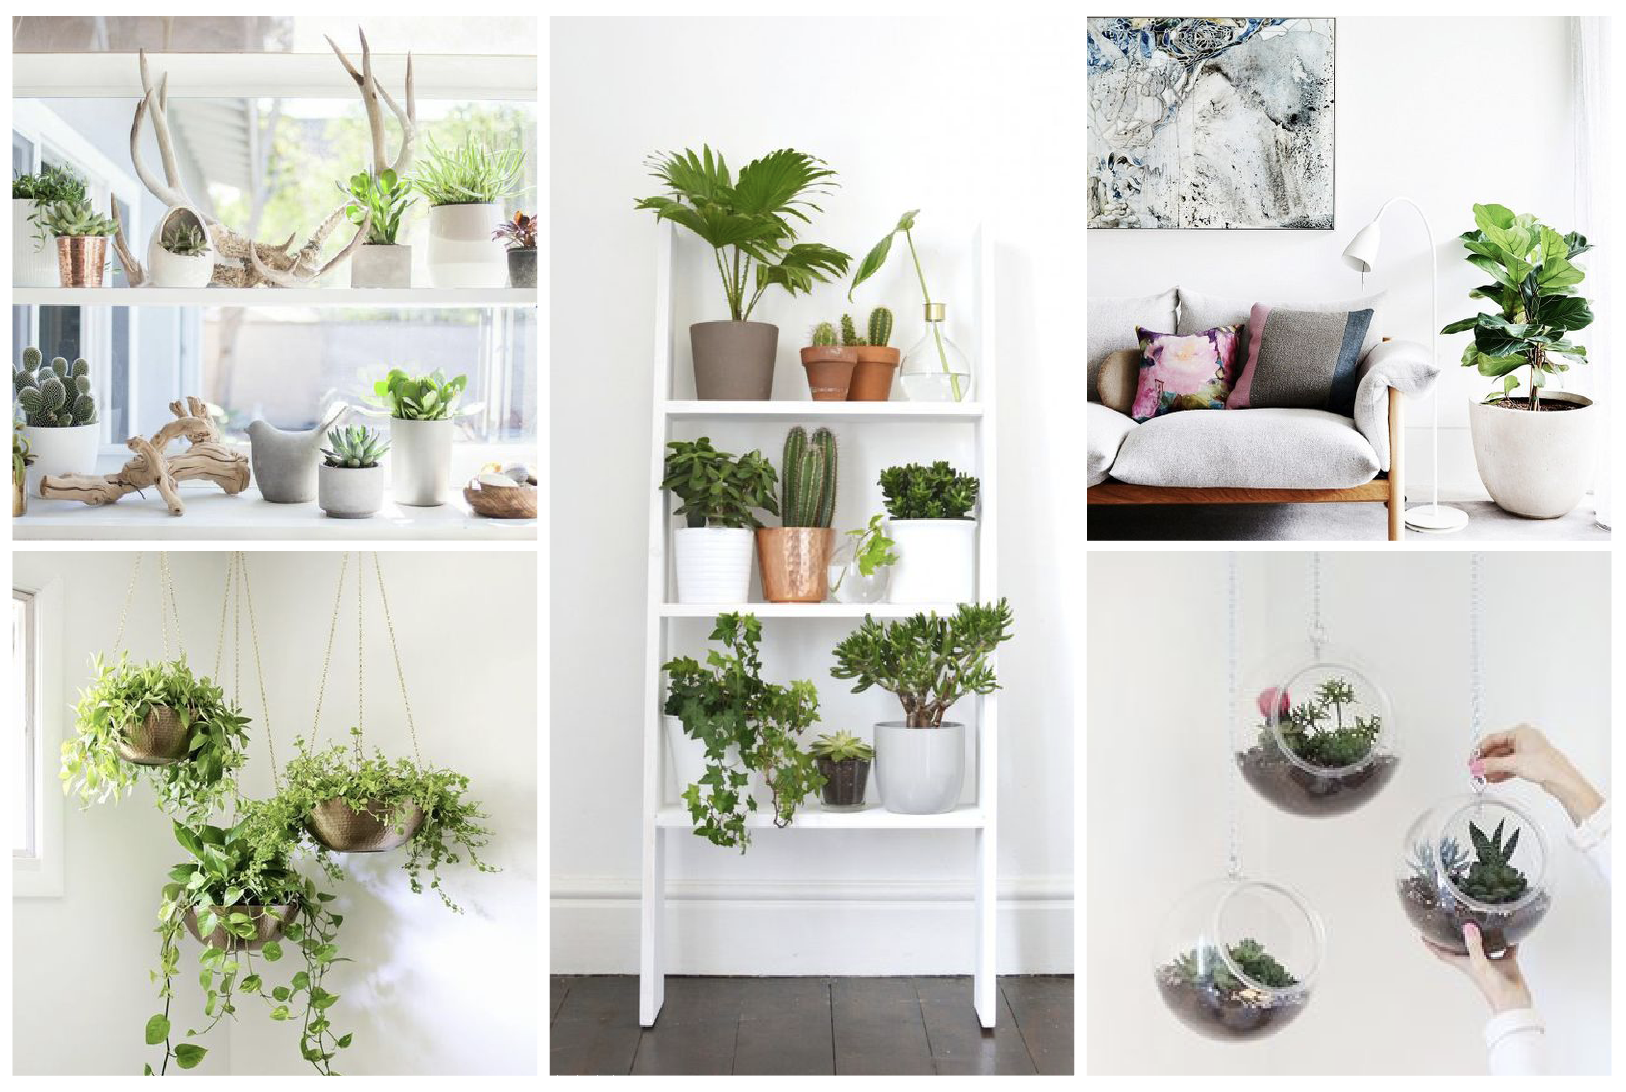 Superb plantes d interieur decoration 11 quand les Interieur deco